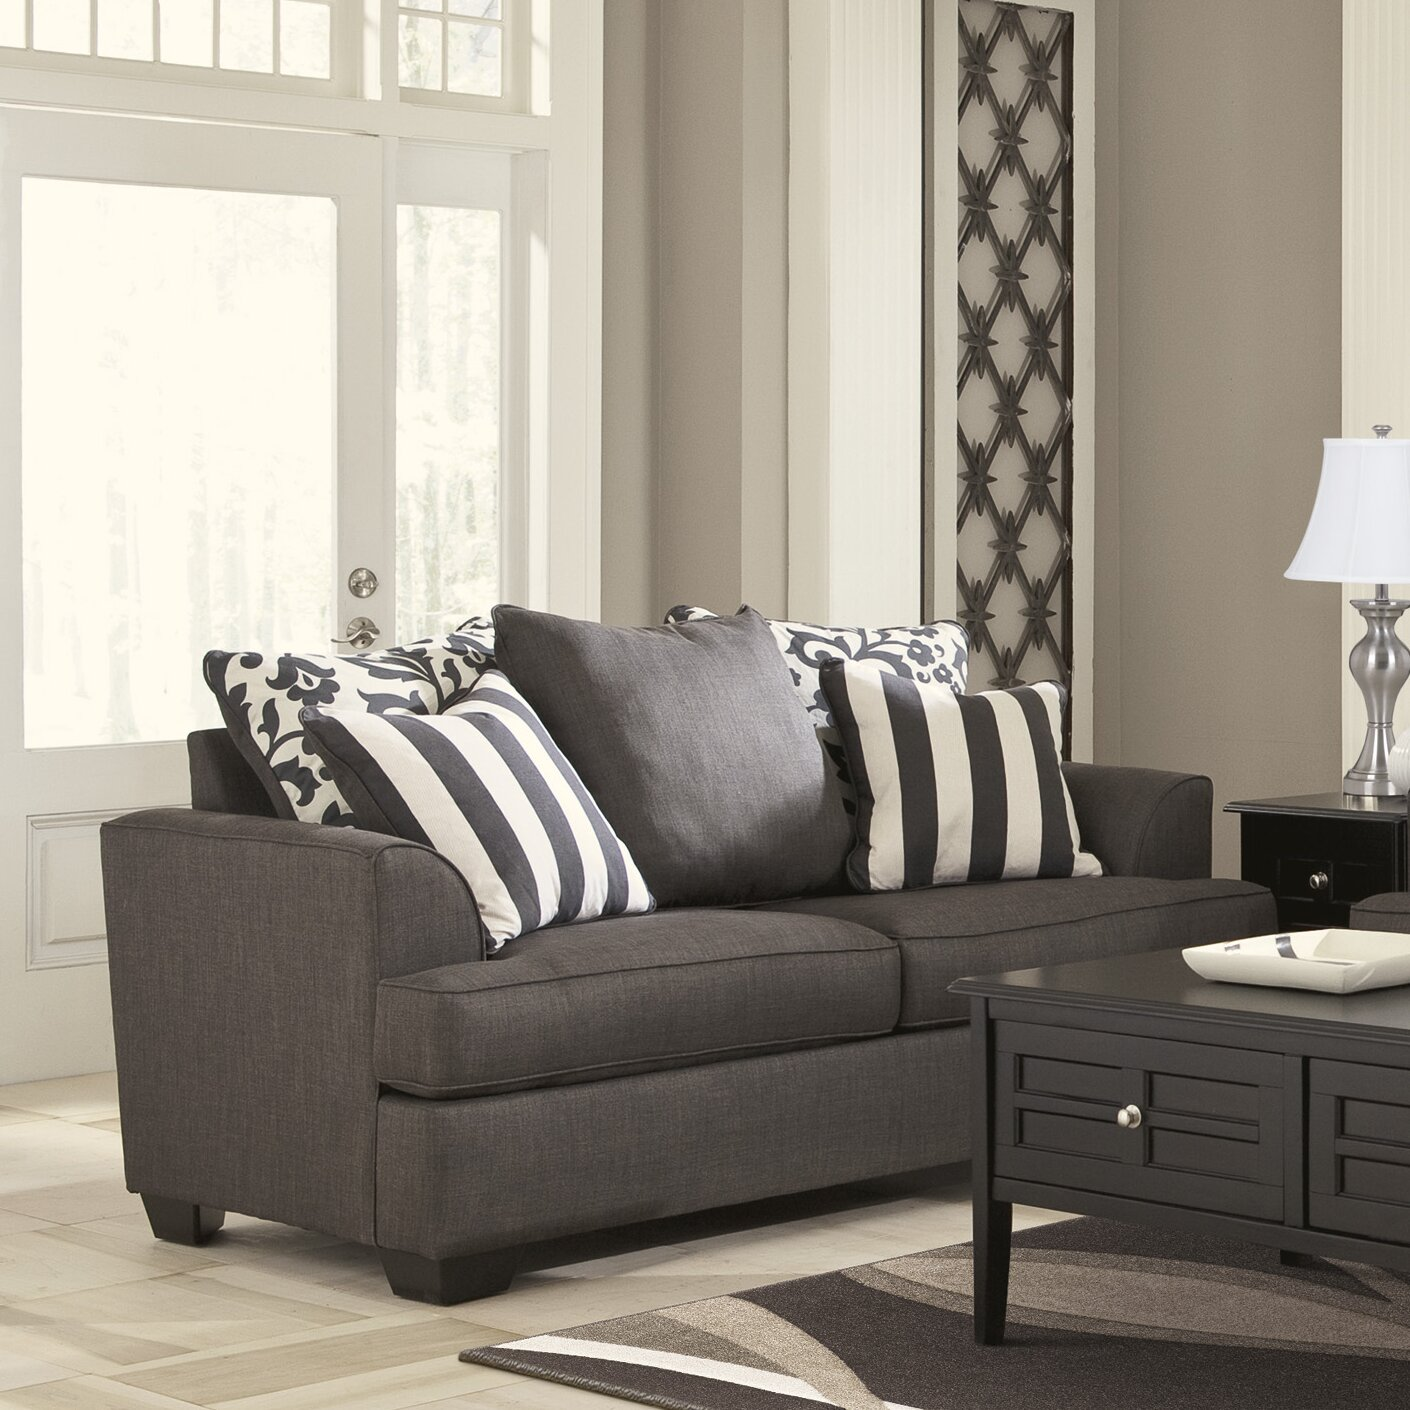 Ashley Signature Collection: Signature Design By Ashley Hobson Living Room Collection